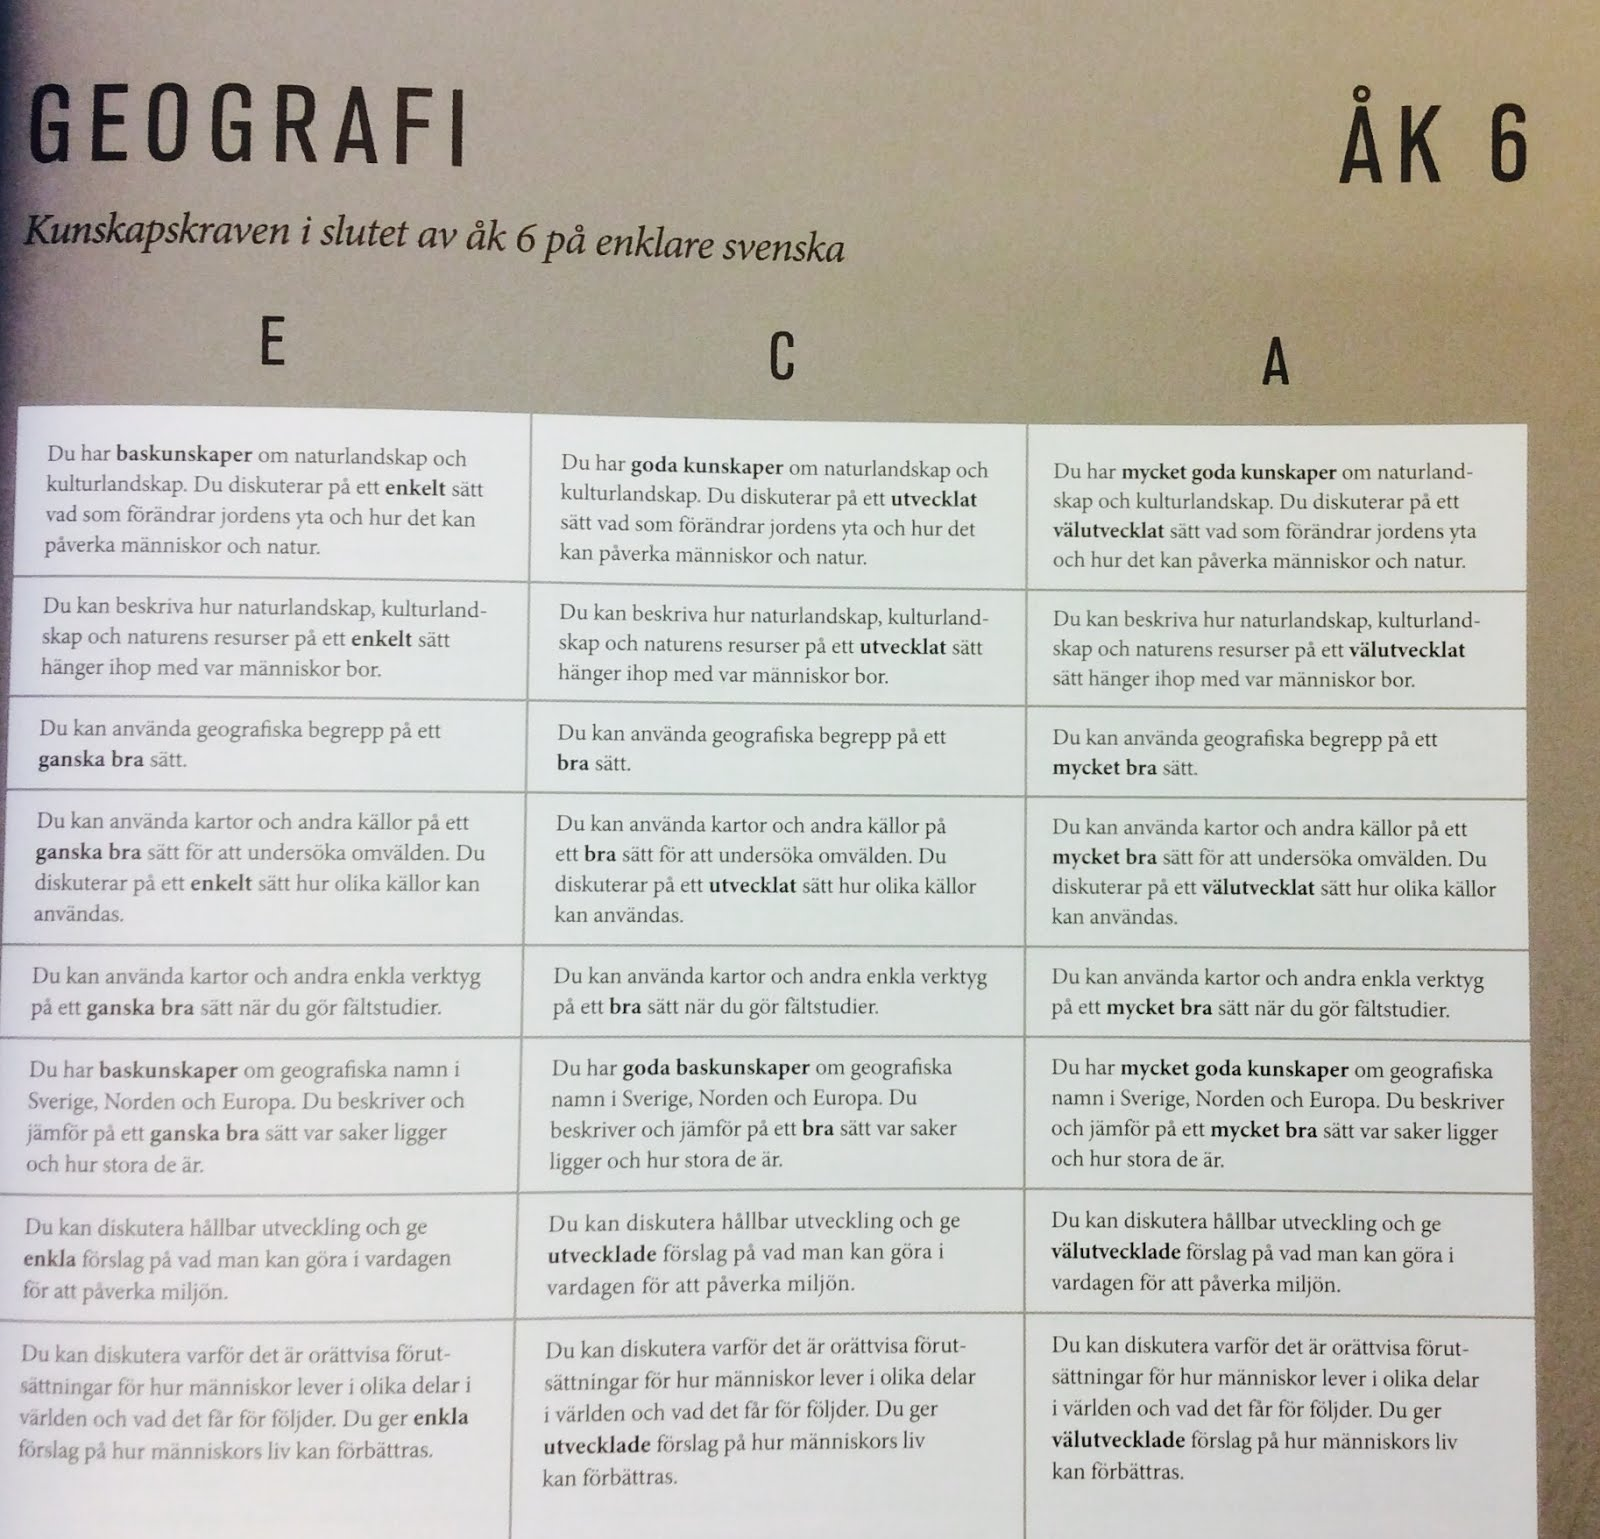 SO - geografi